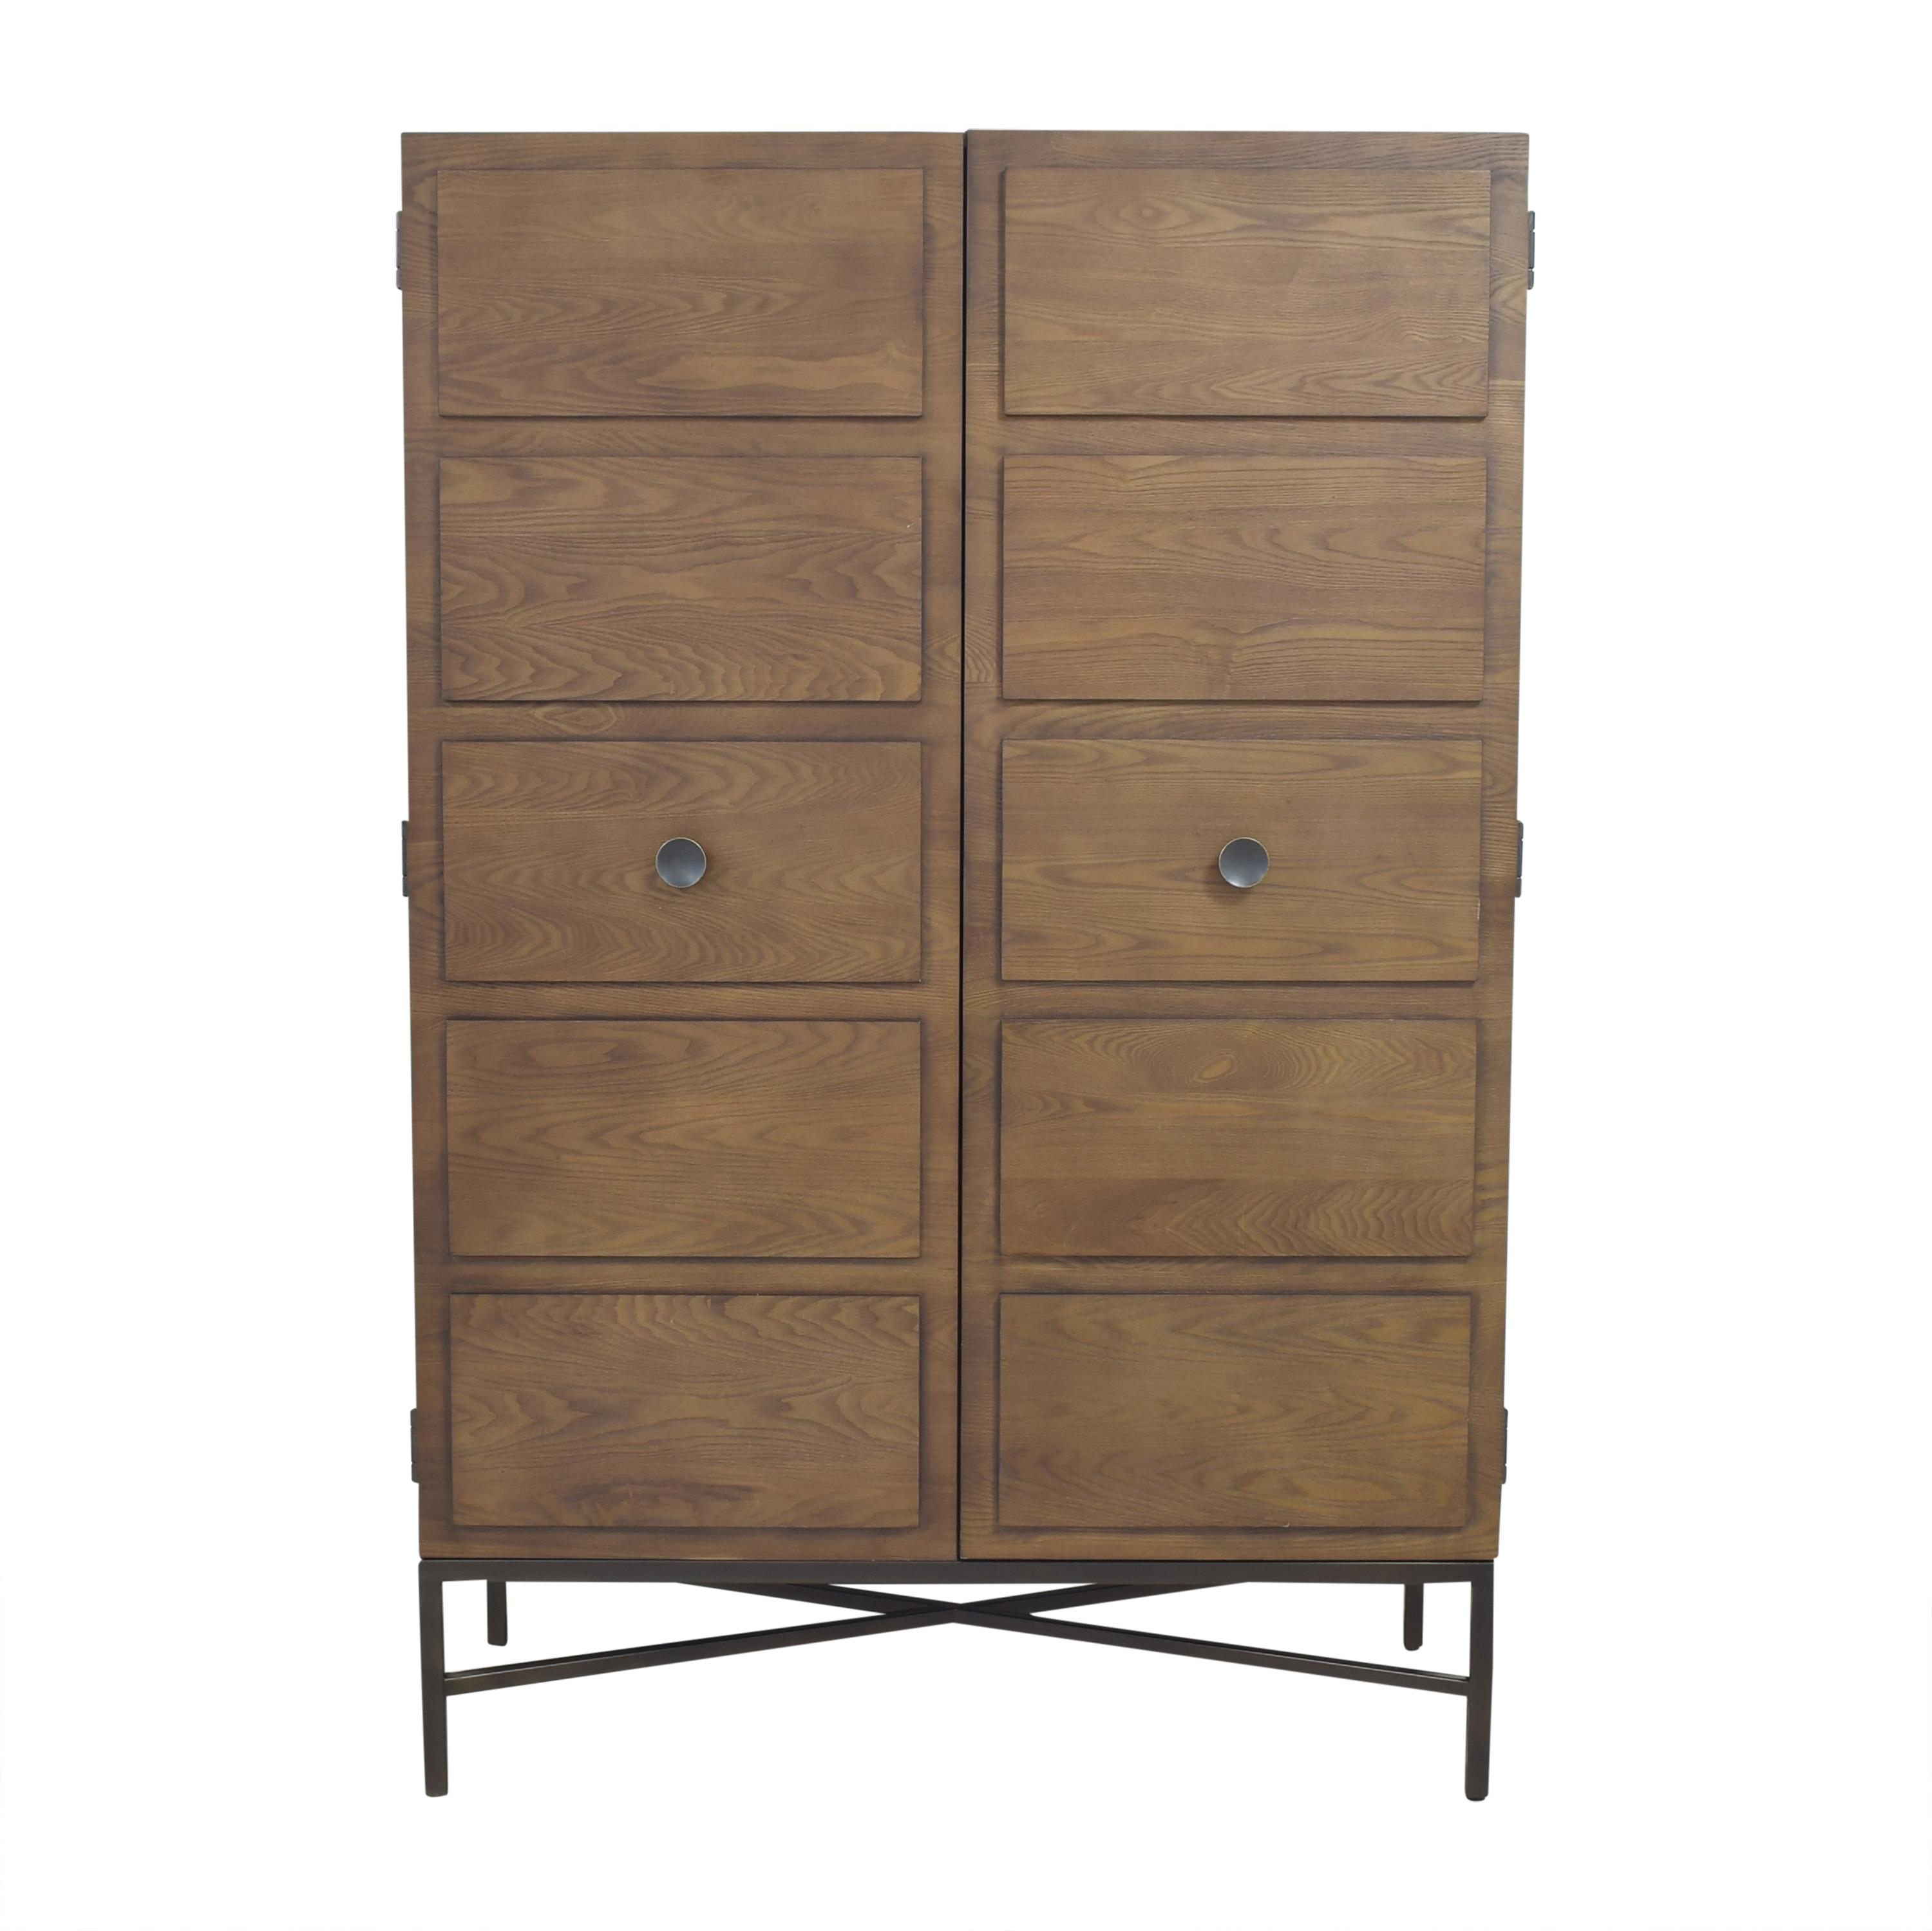 West Elm Paneled Armoire / Storage